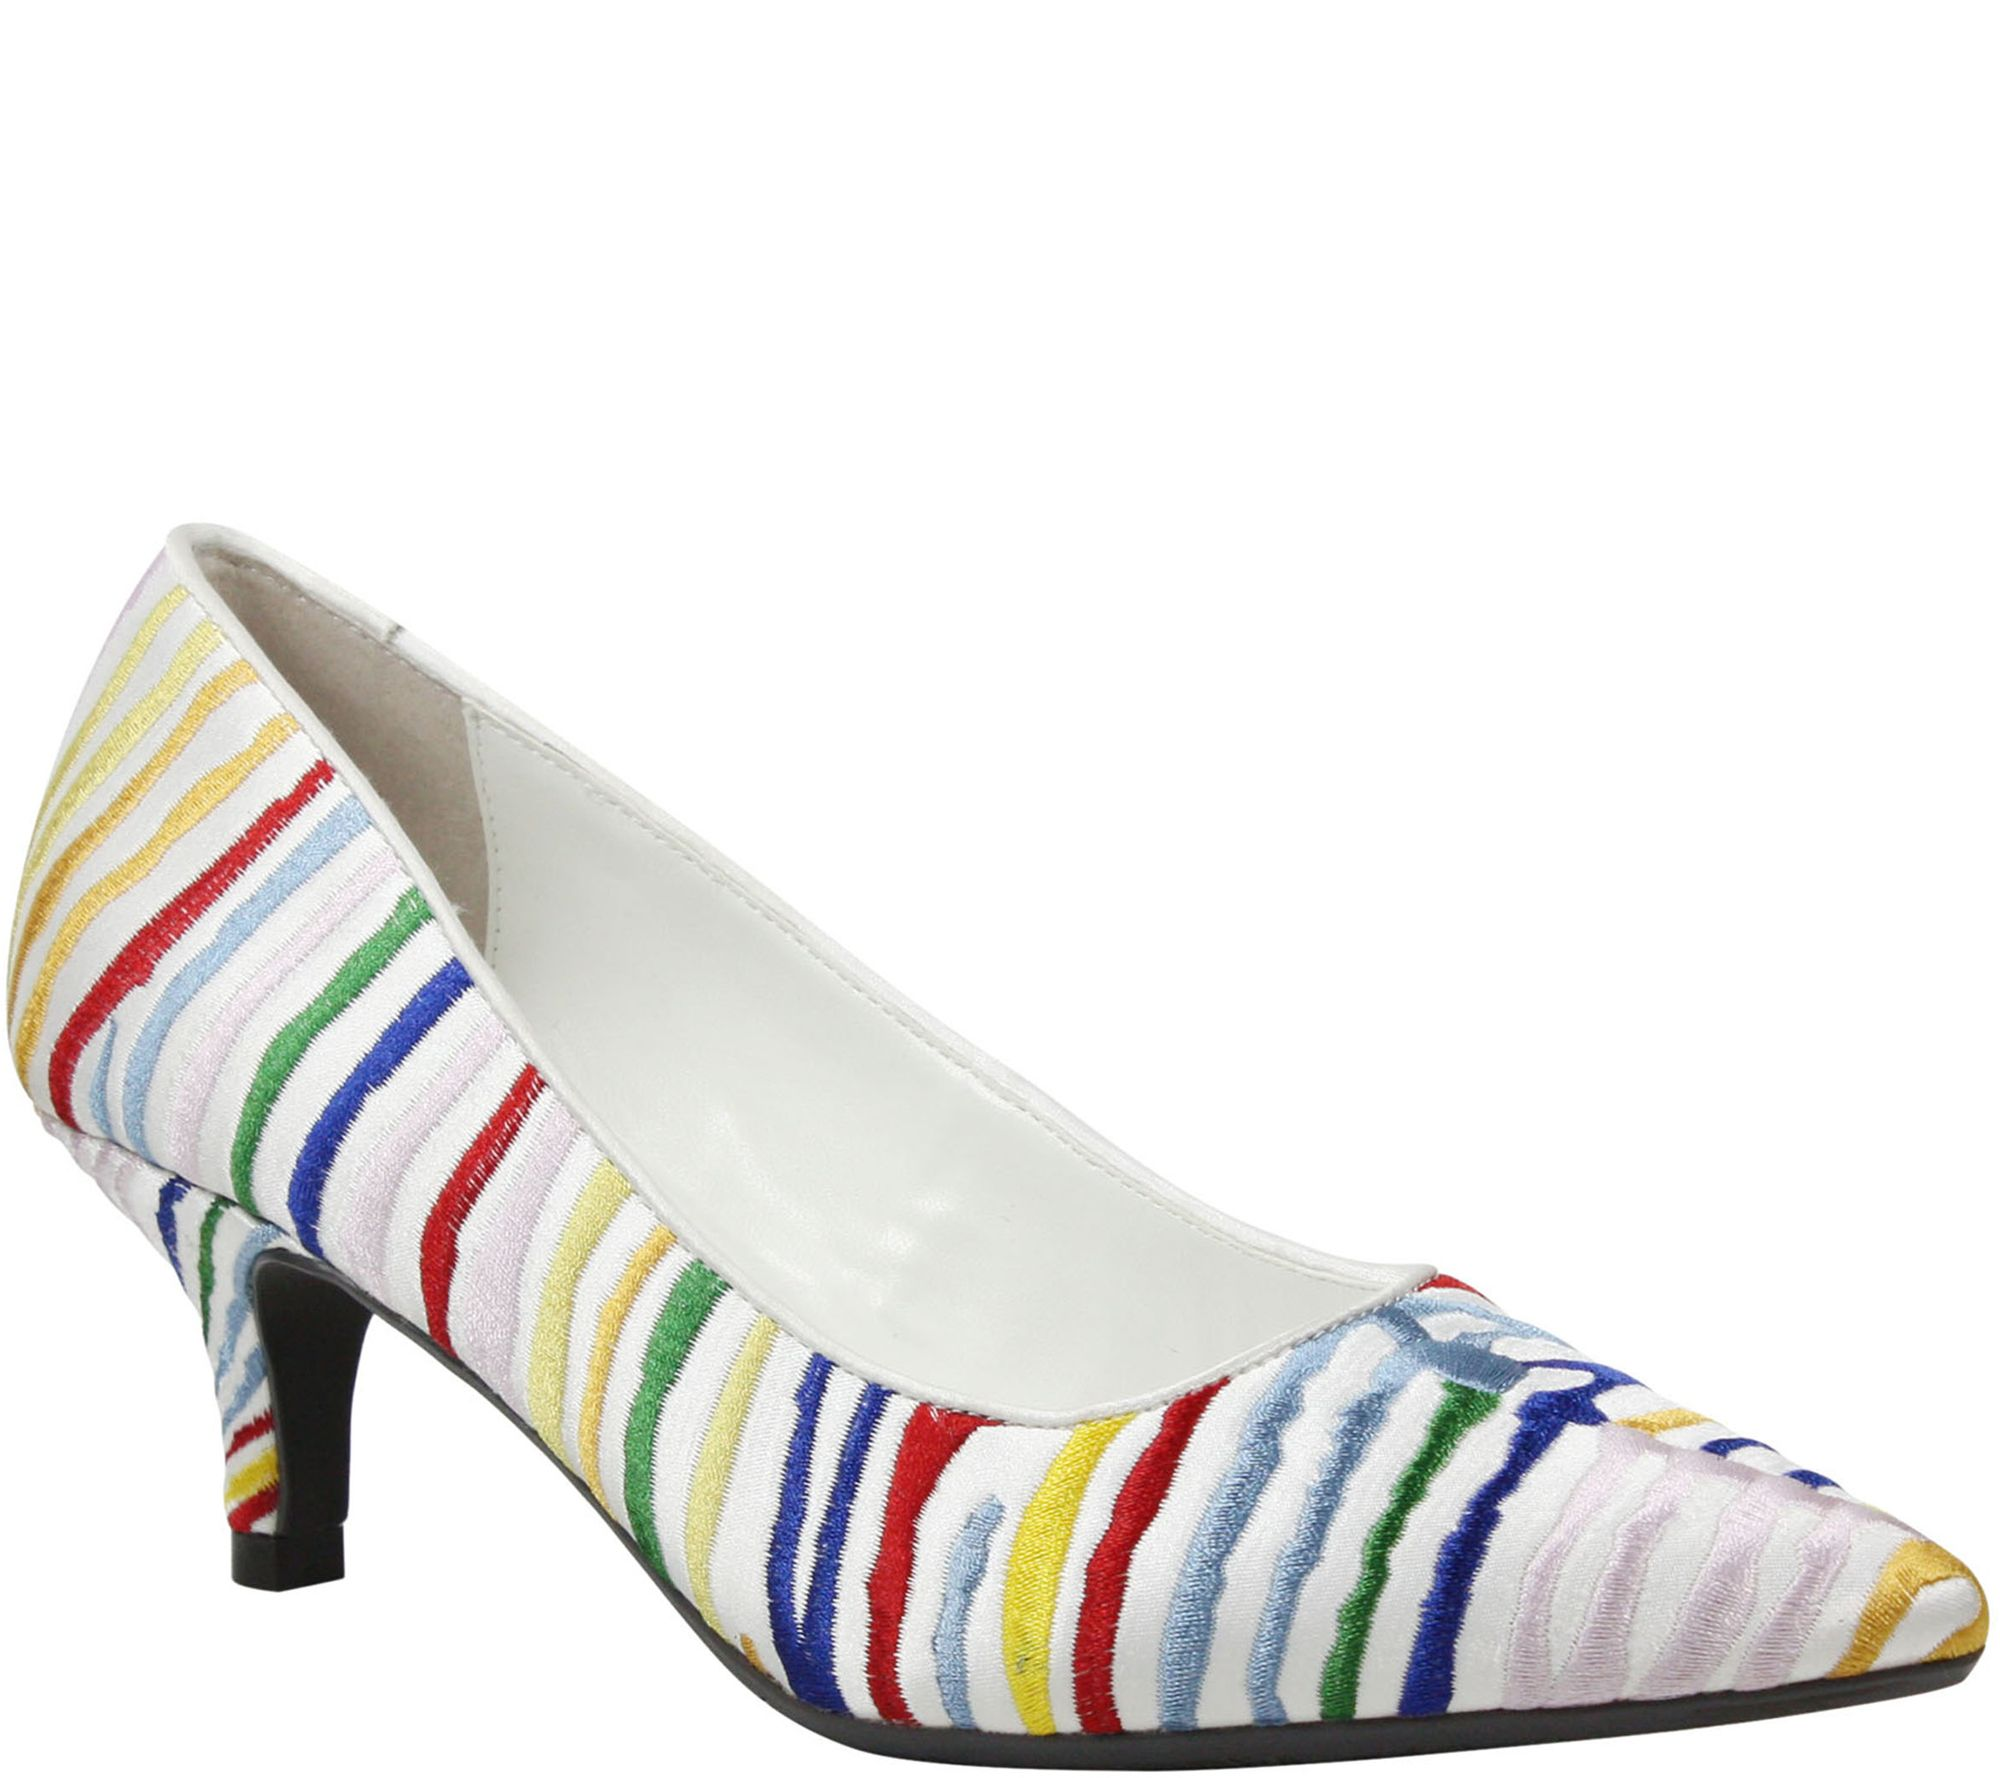 outlet locations cheap online J. Renee Mid Heel Pumps - Zelaina clearance footlocker Sl7XURm